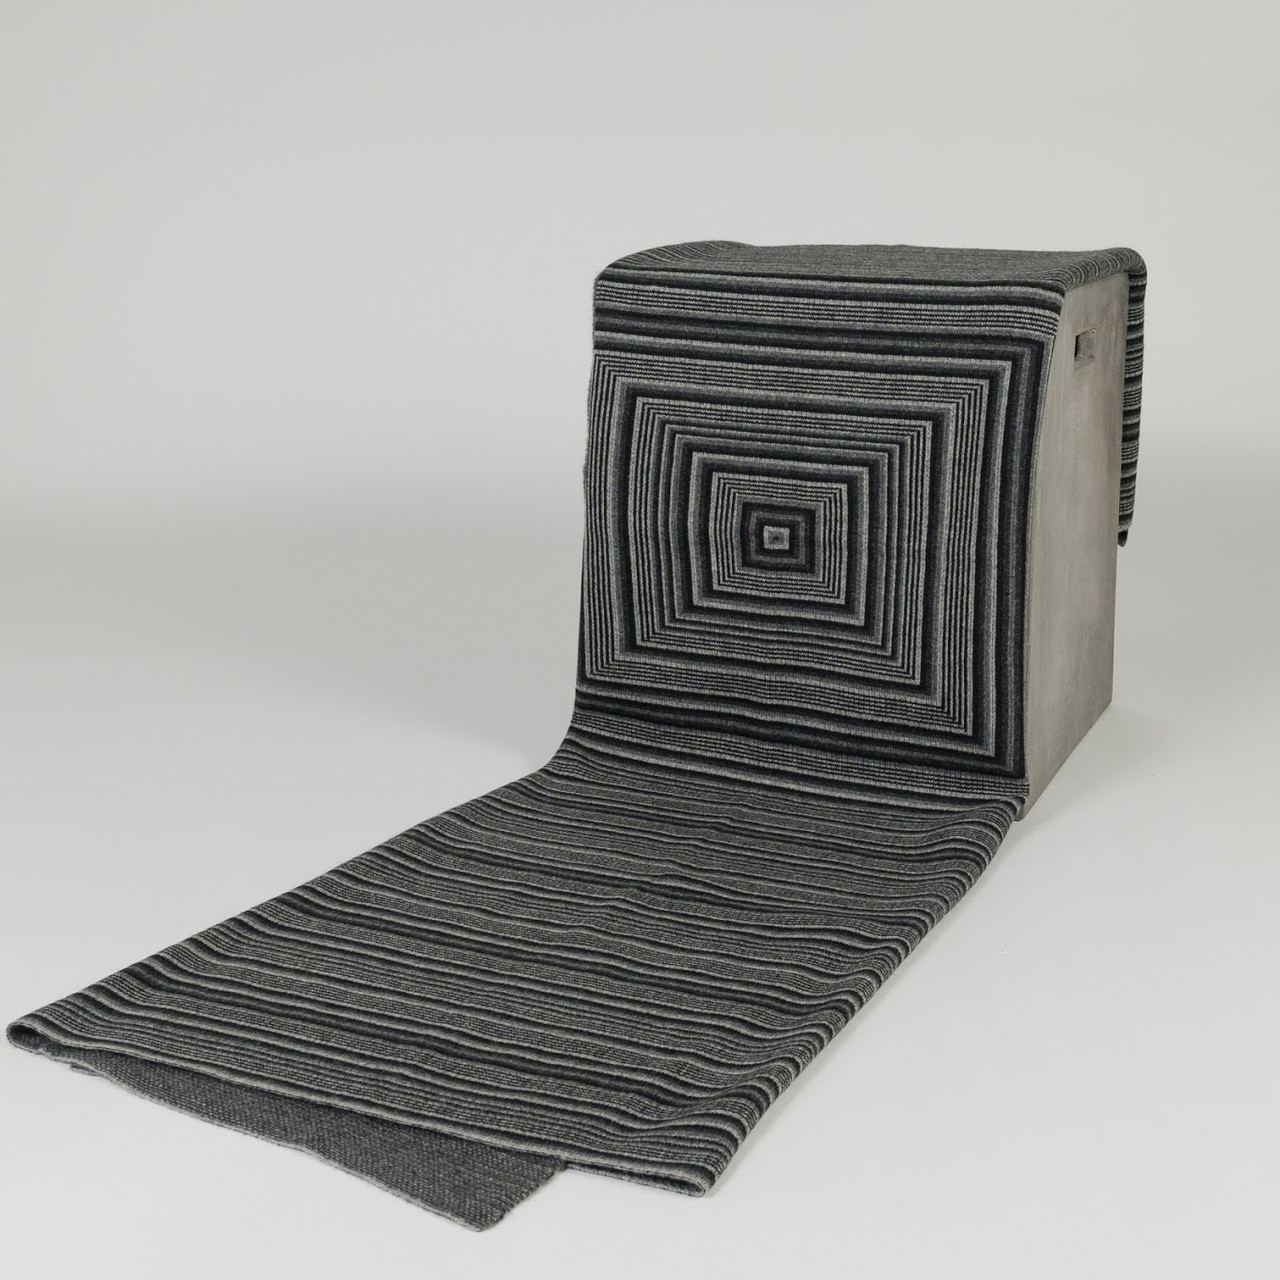 Jacquard Knit Black & Grey Throw